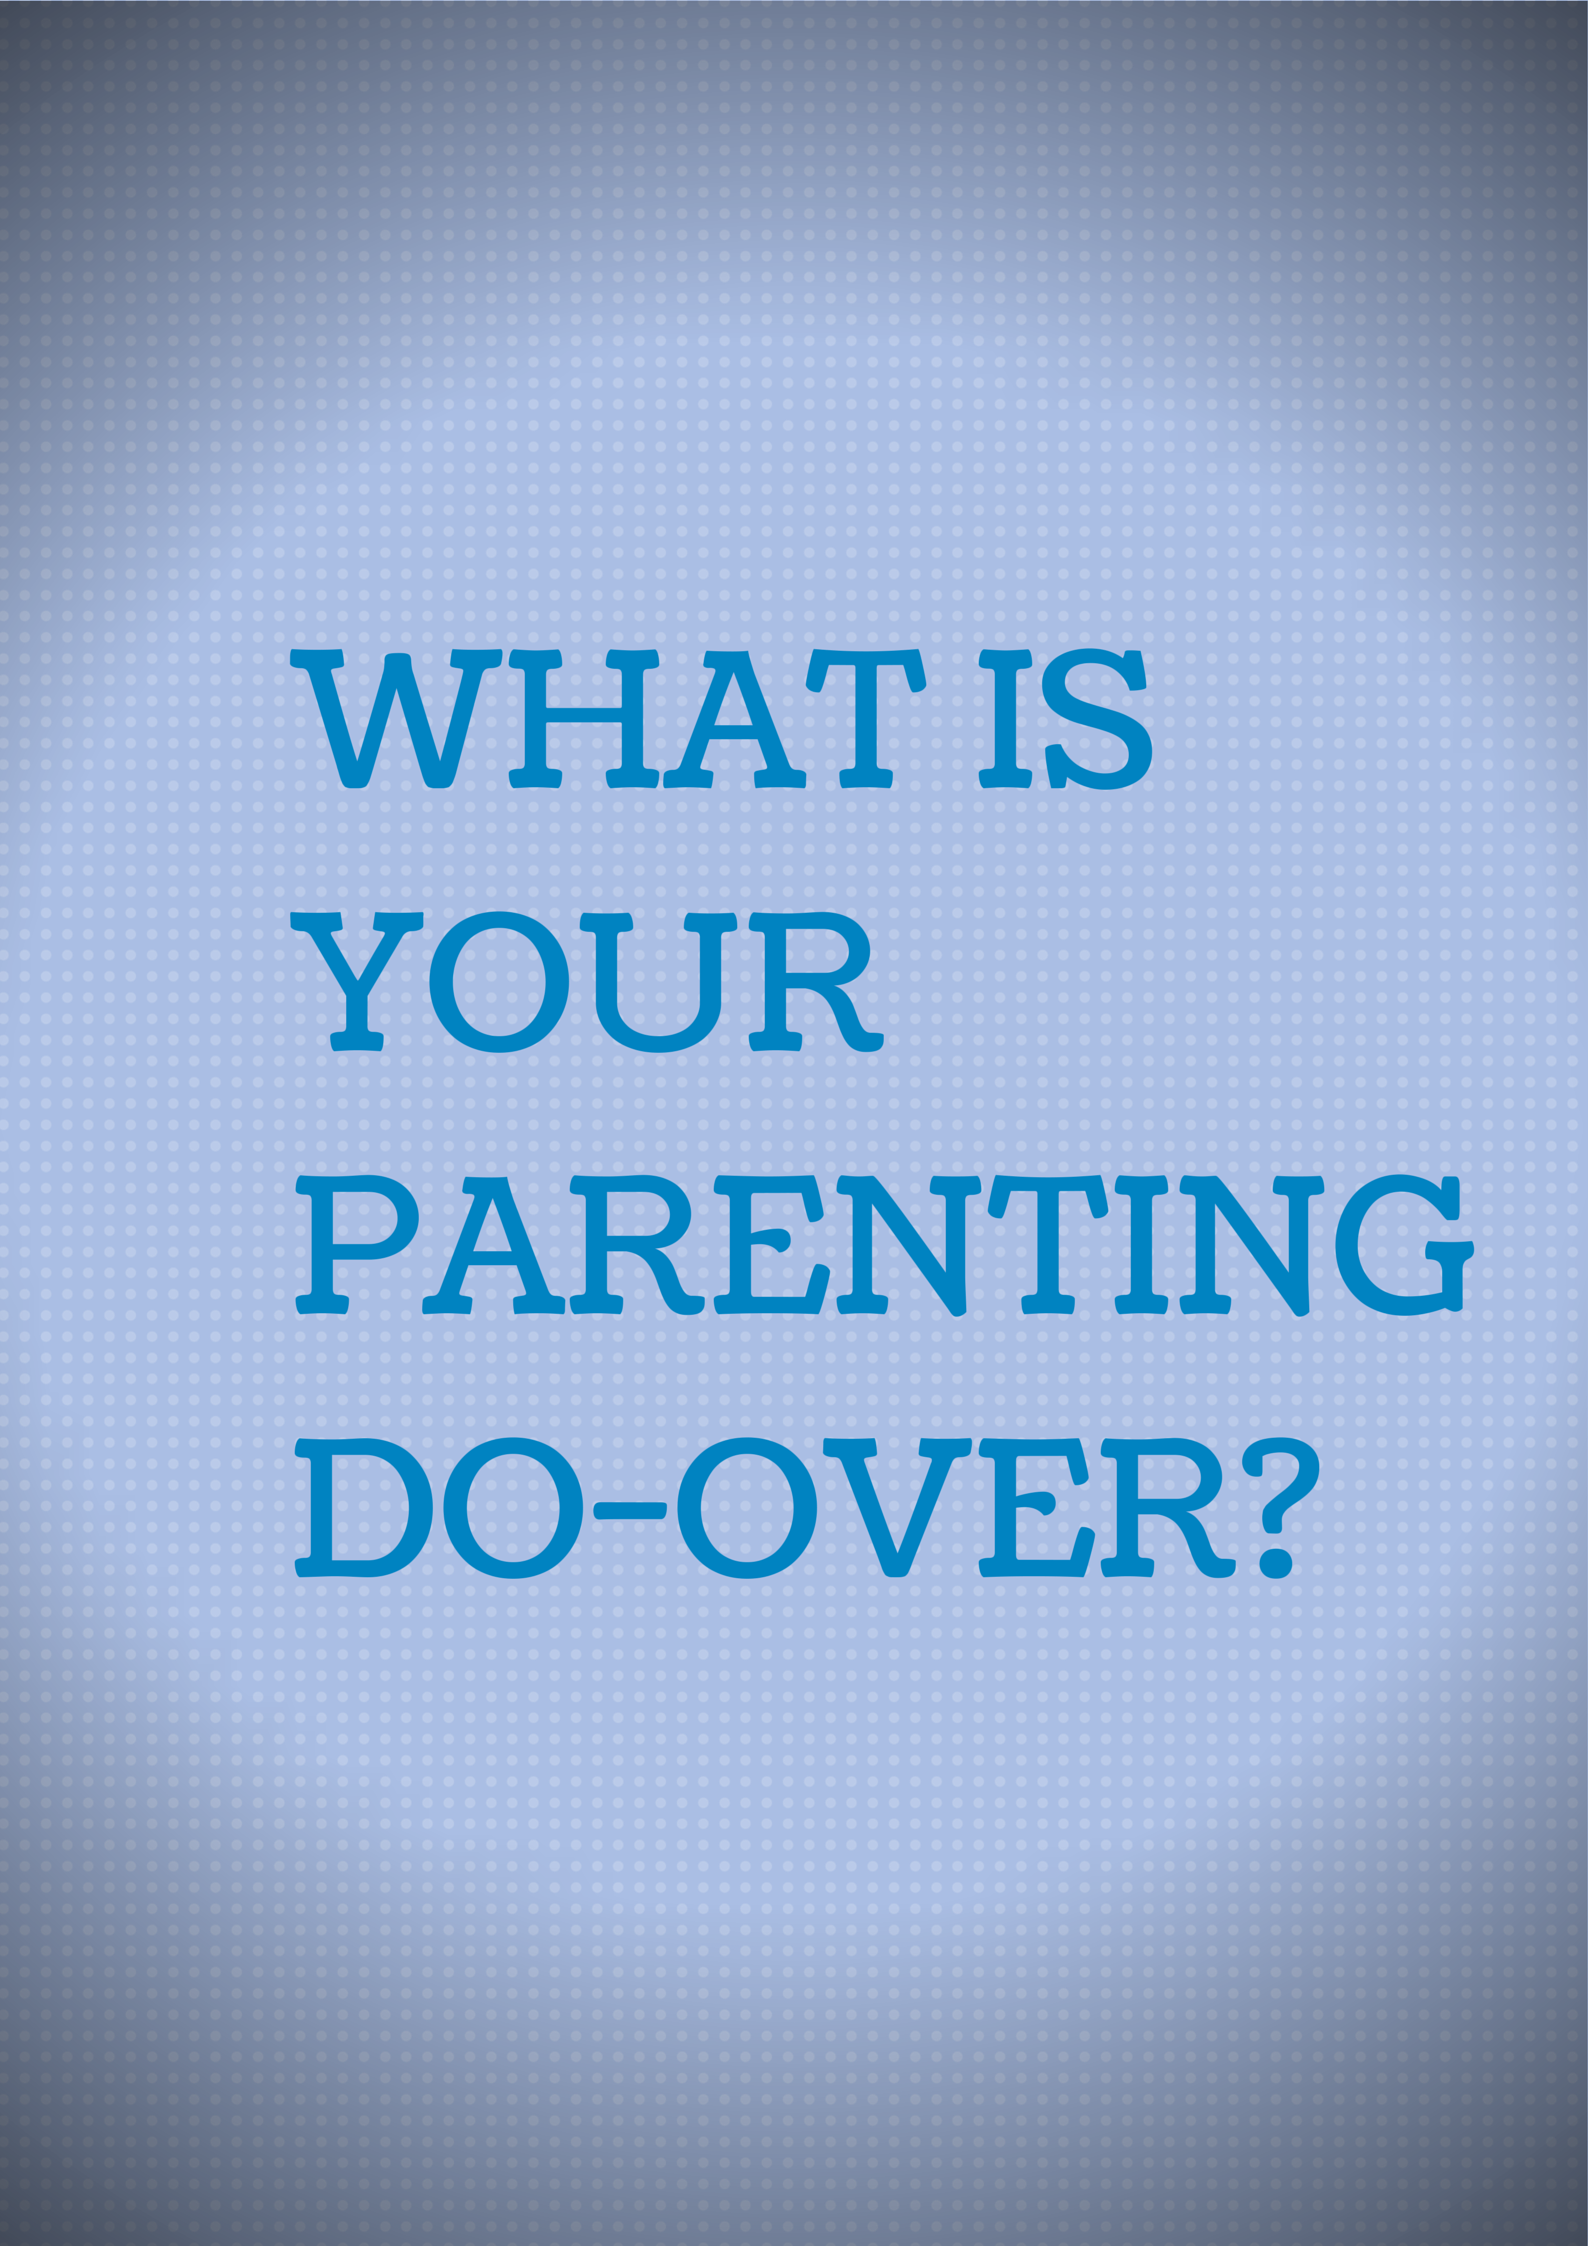 WHAT IS YOUR PARENTING DO-OVER